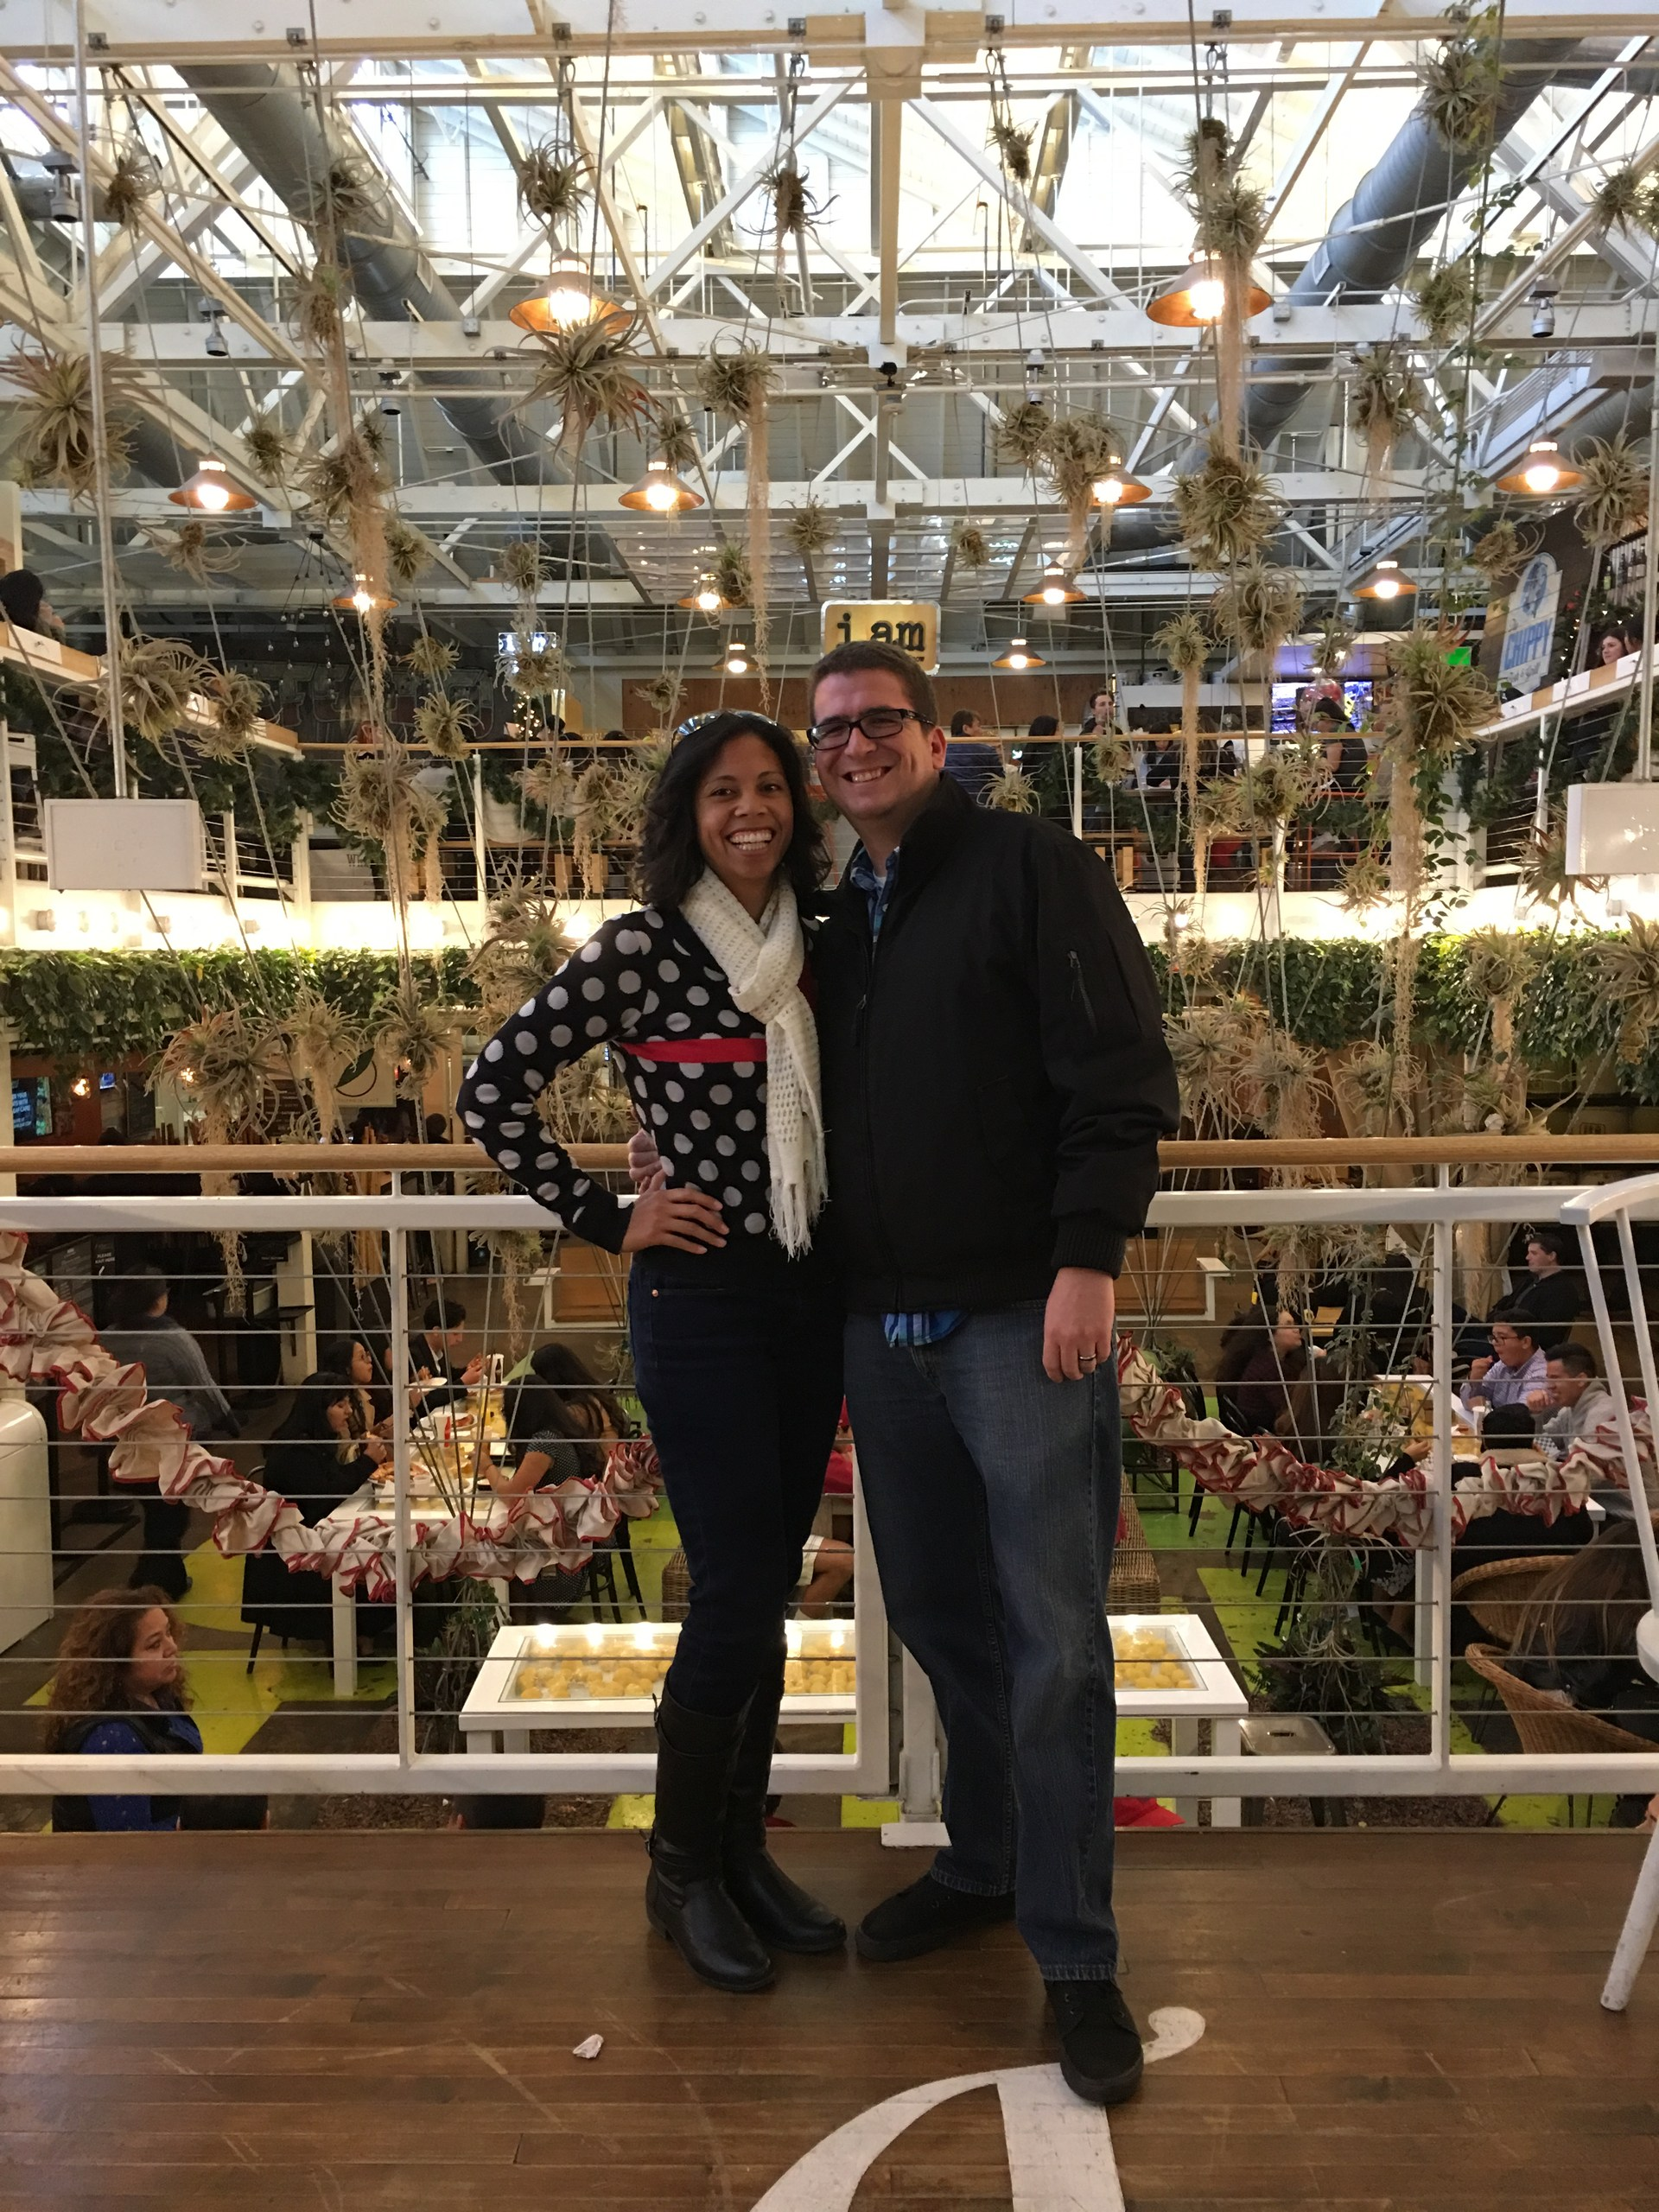 Mr and Mrs. Baugh at Anaheim Packing House